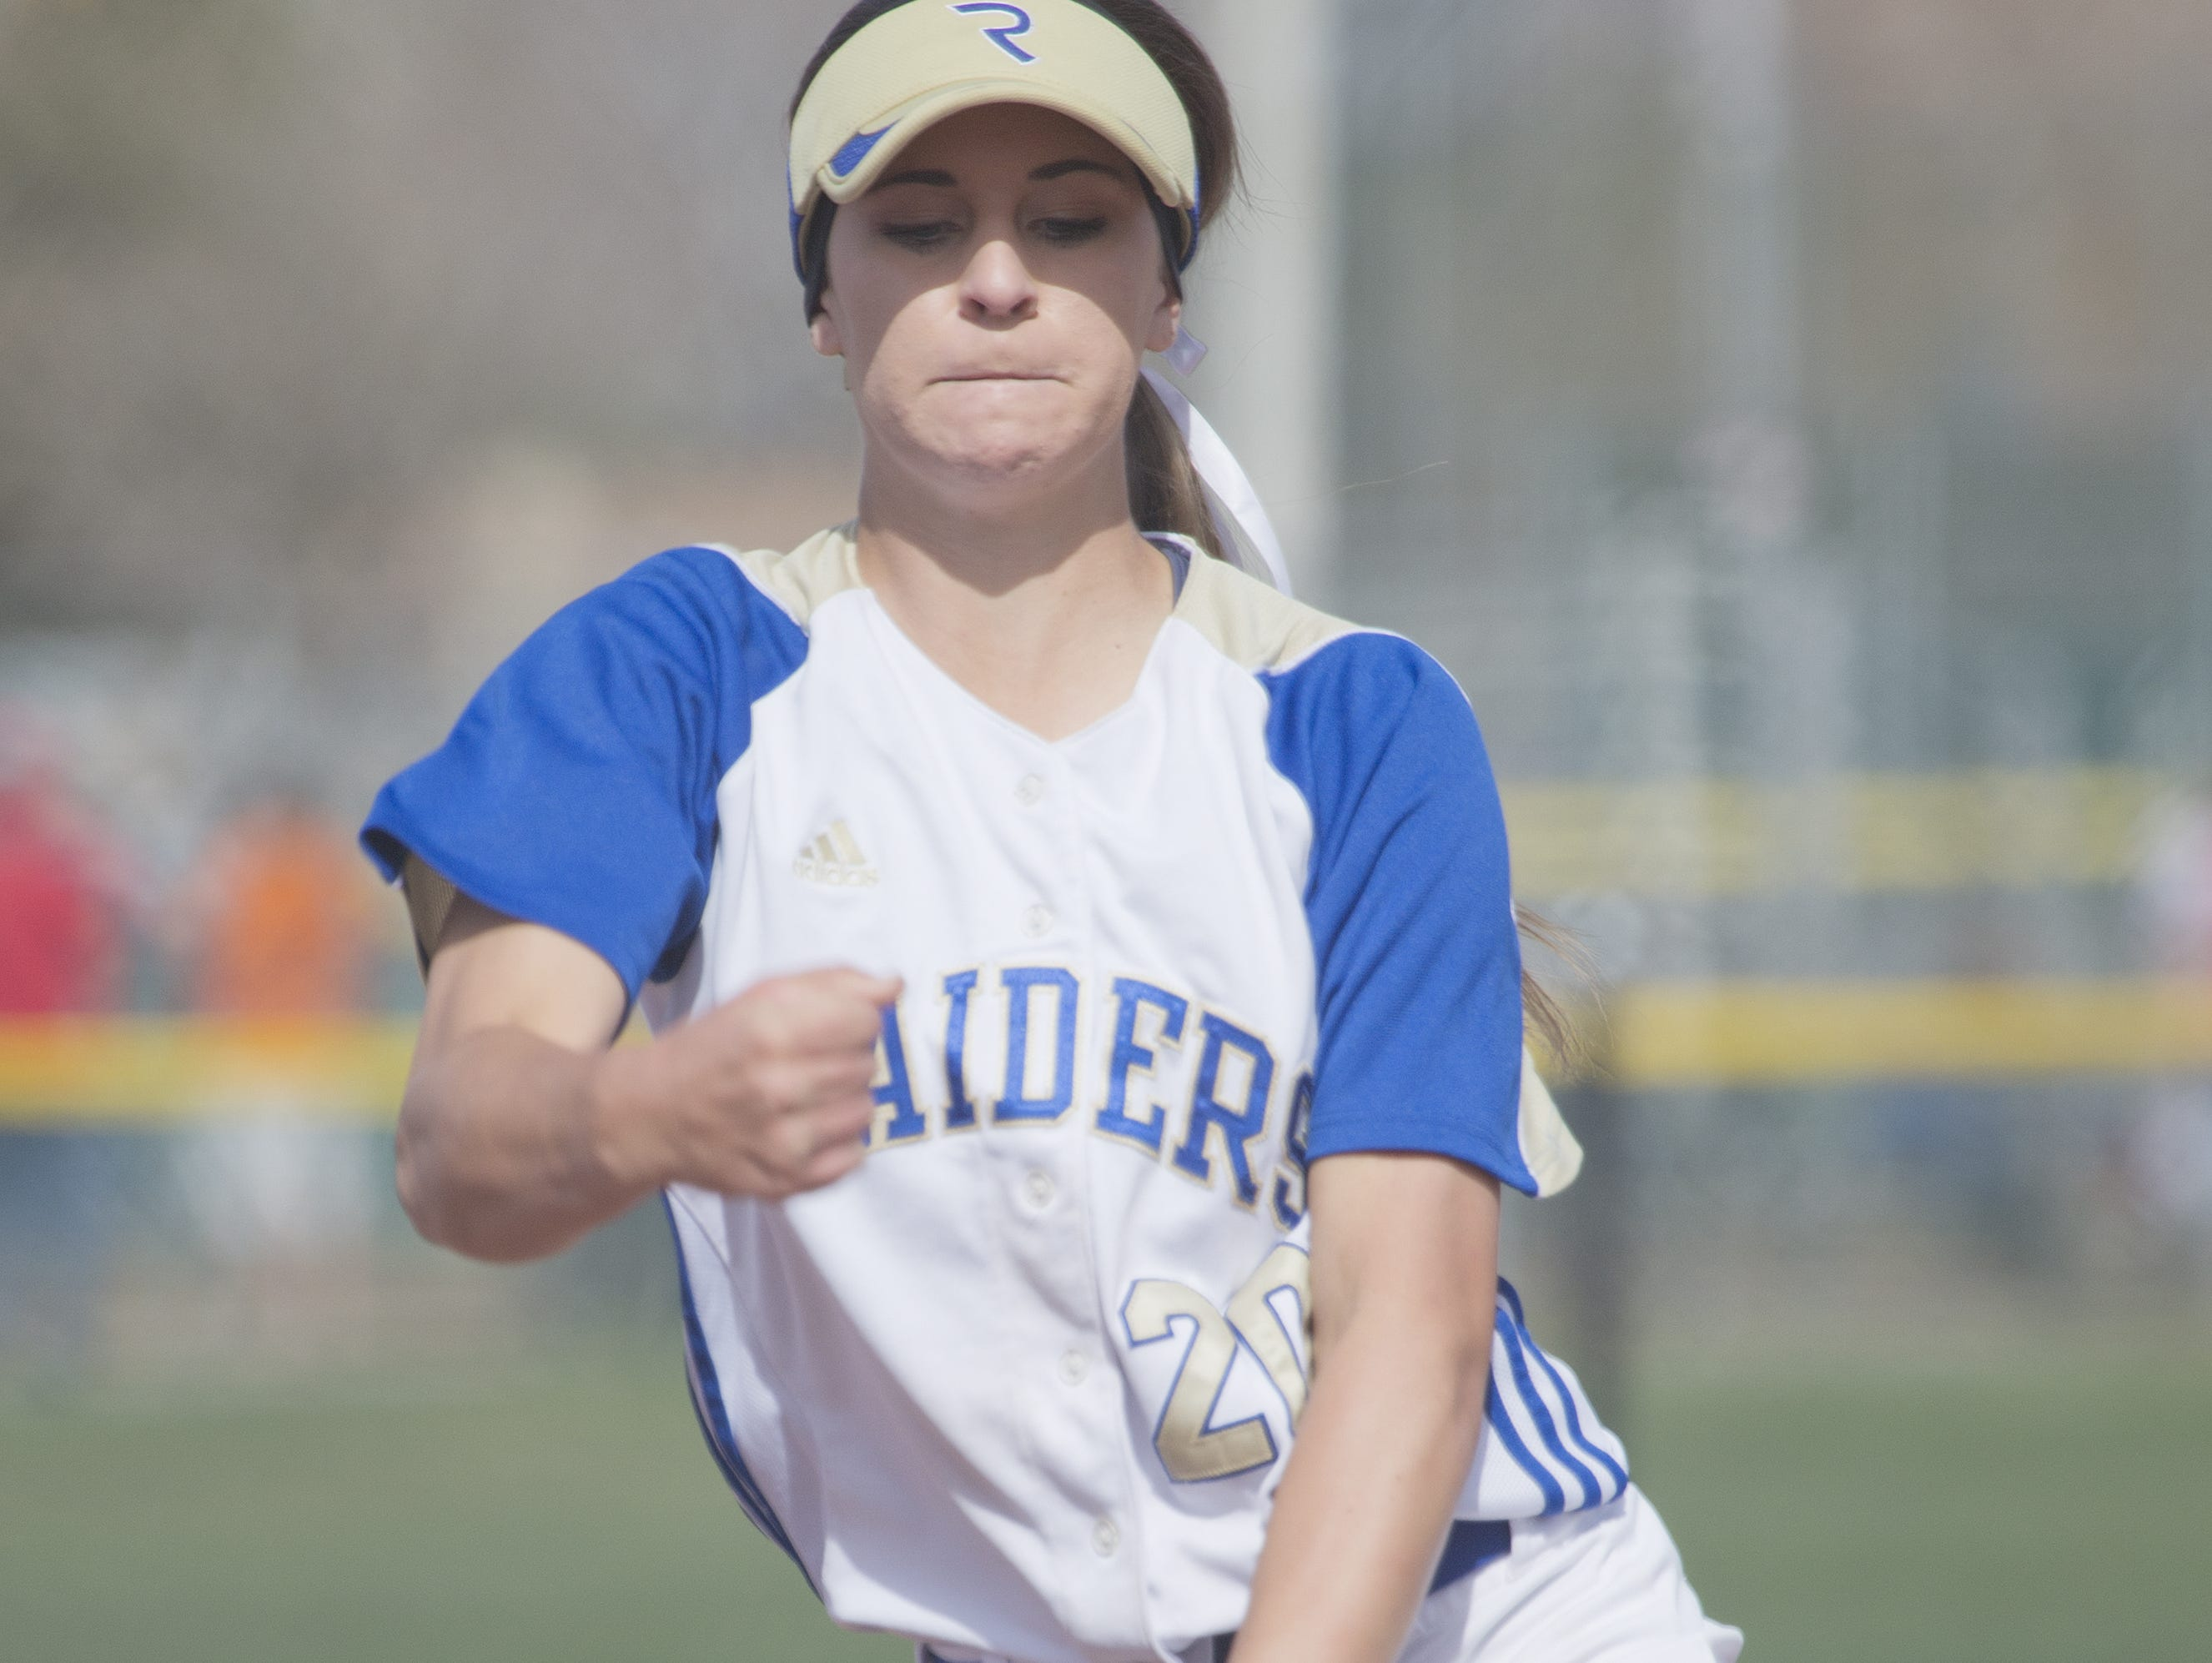 Reed pitcher Julia Jensen was 34-2 overall last year and was named a preseason All-American by MaxPreps and USA Today after notching 346 strikeouts and 34 wins last season.